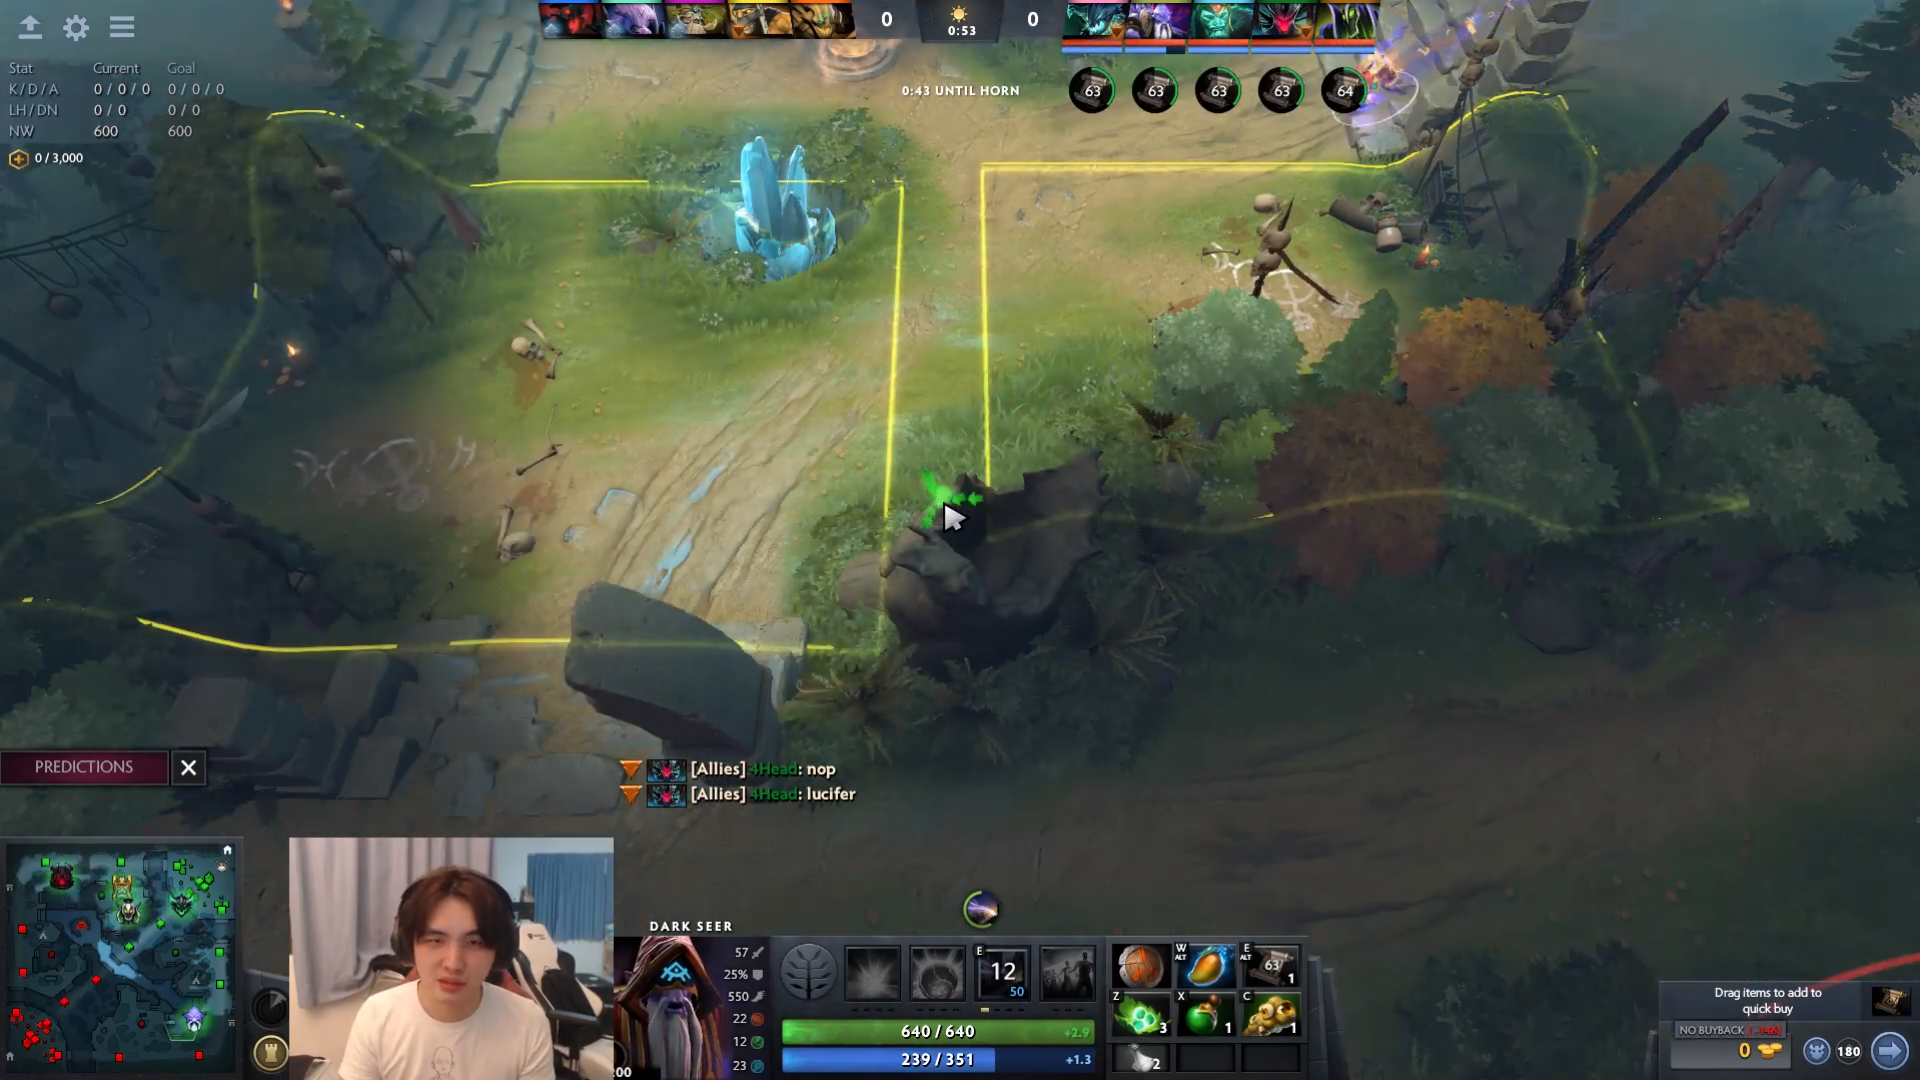 Dota 2 Pro's Twitch Channel Closed After Using N-Word To Describe His Name